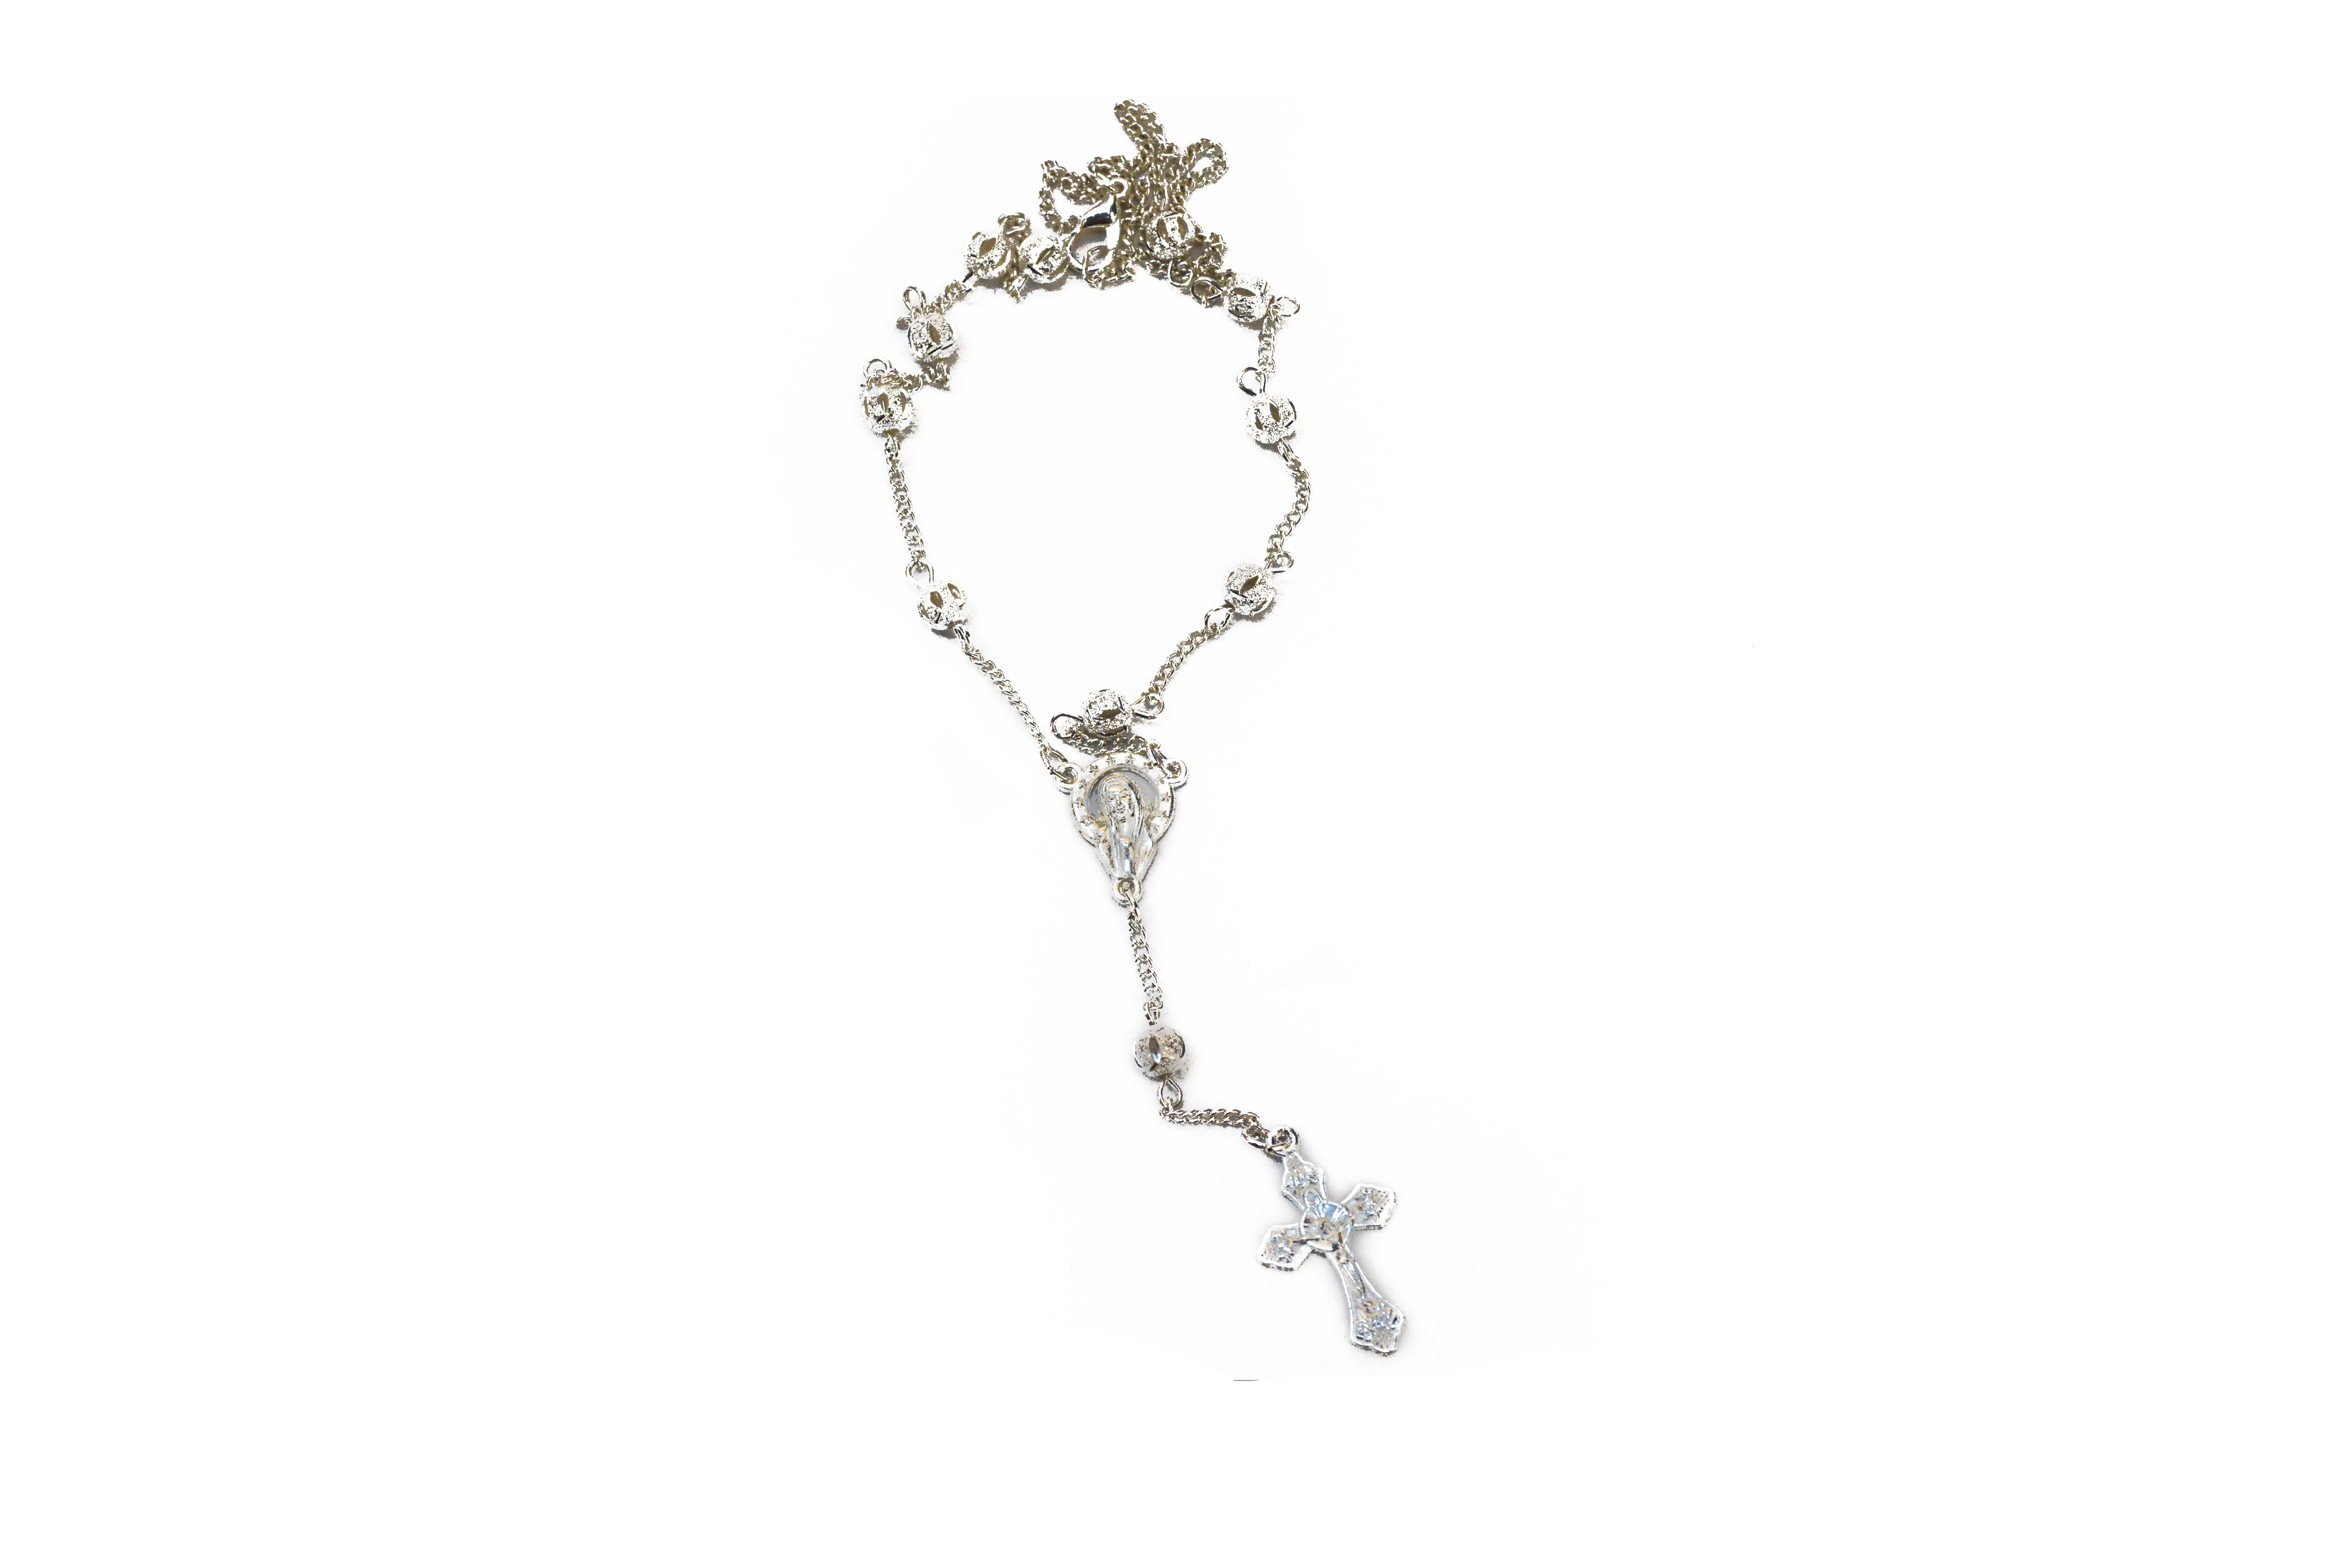 Rosary necklace silvered loratoire saint joseph du mont royal collier dizainier argent silvered rosary necklace aloadofball Gallery